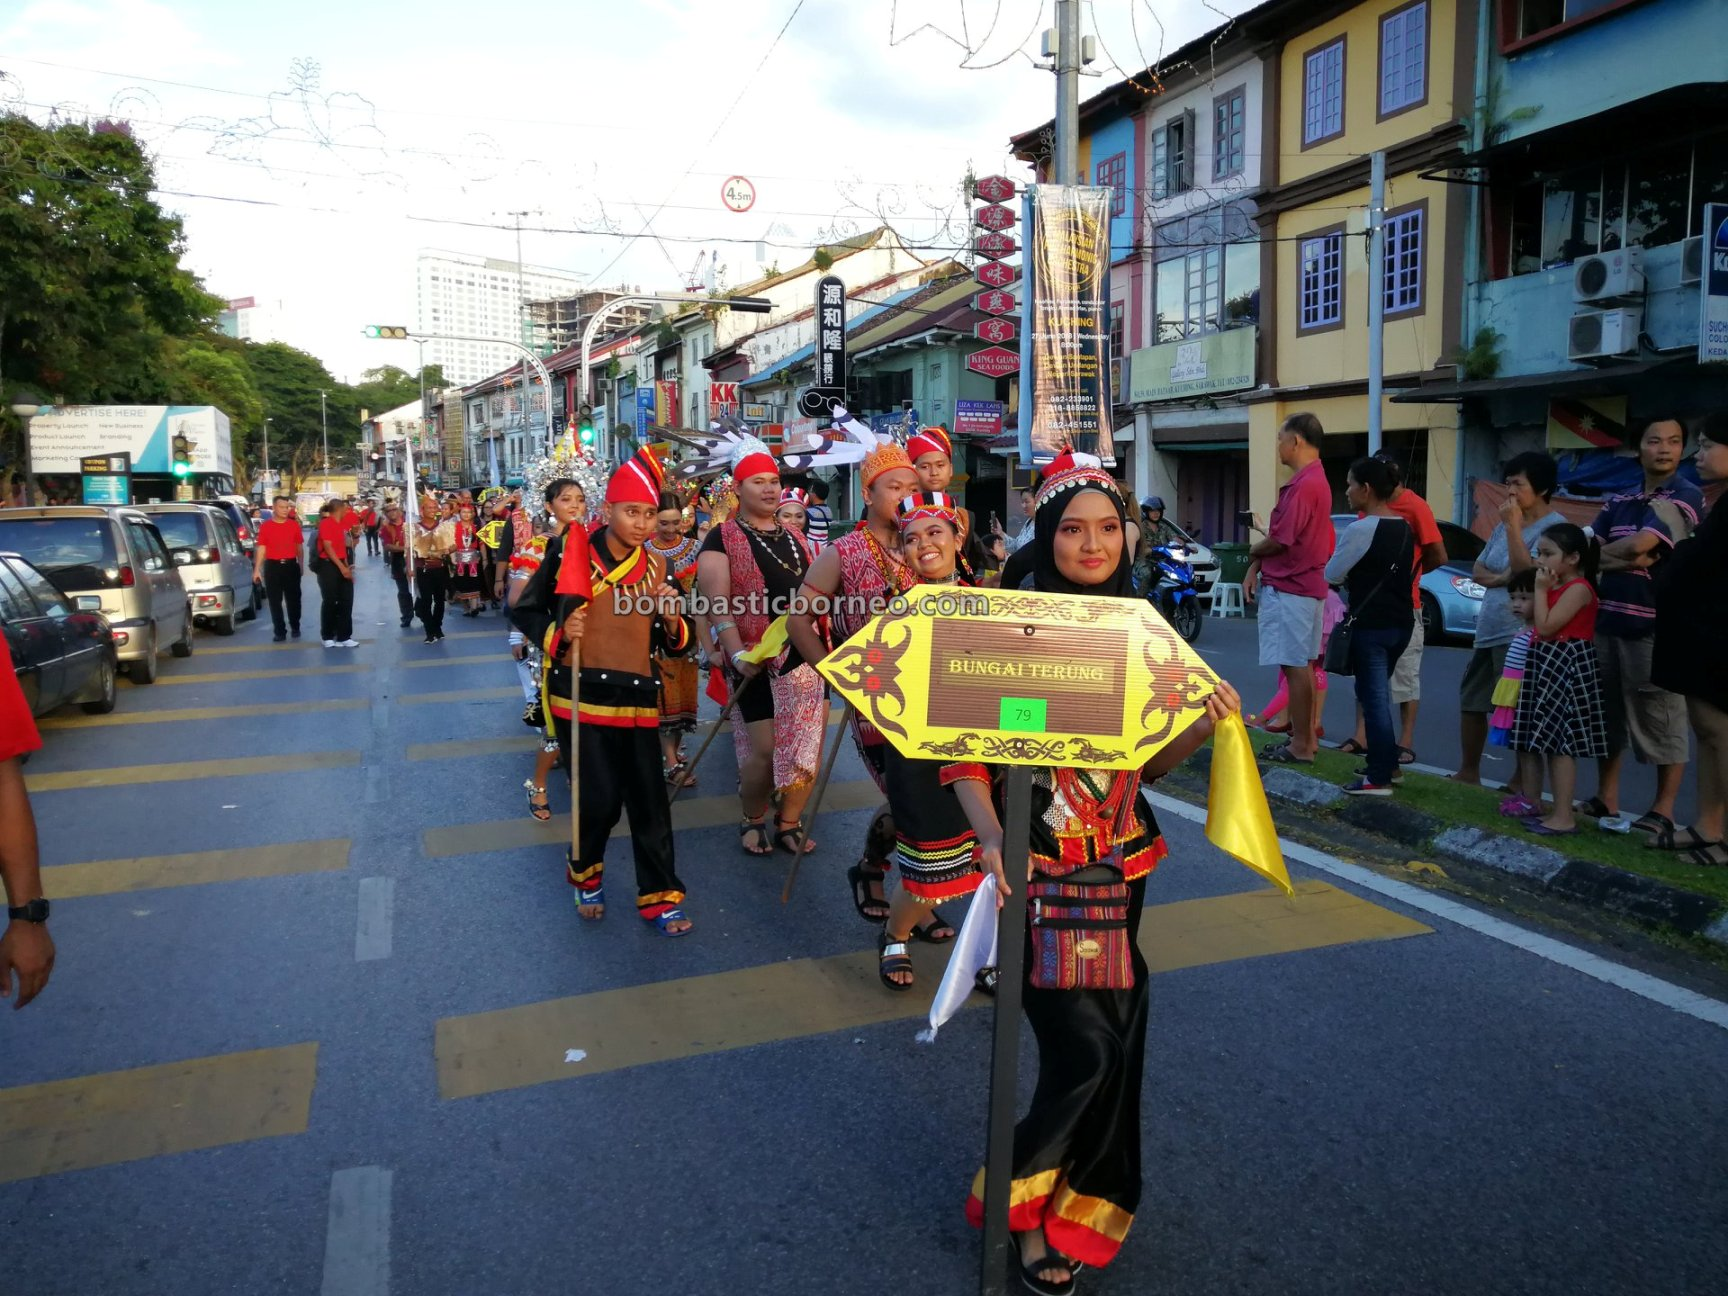 Street Parade, harvest festival, traditional, culture, event, Kuching Waterfront, indigenous, native, tribe, tourist attraction, Travel guide, Trans Borneo, 探索婆罗洲部落, 砂拉越马来西亚, 古晋原住民丰收节,